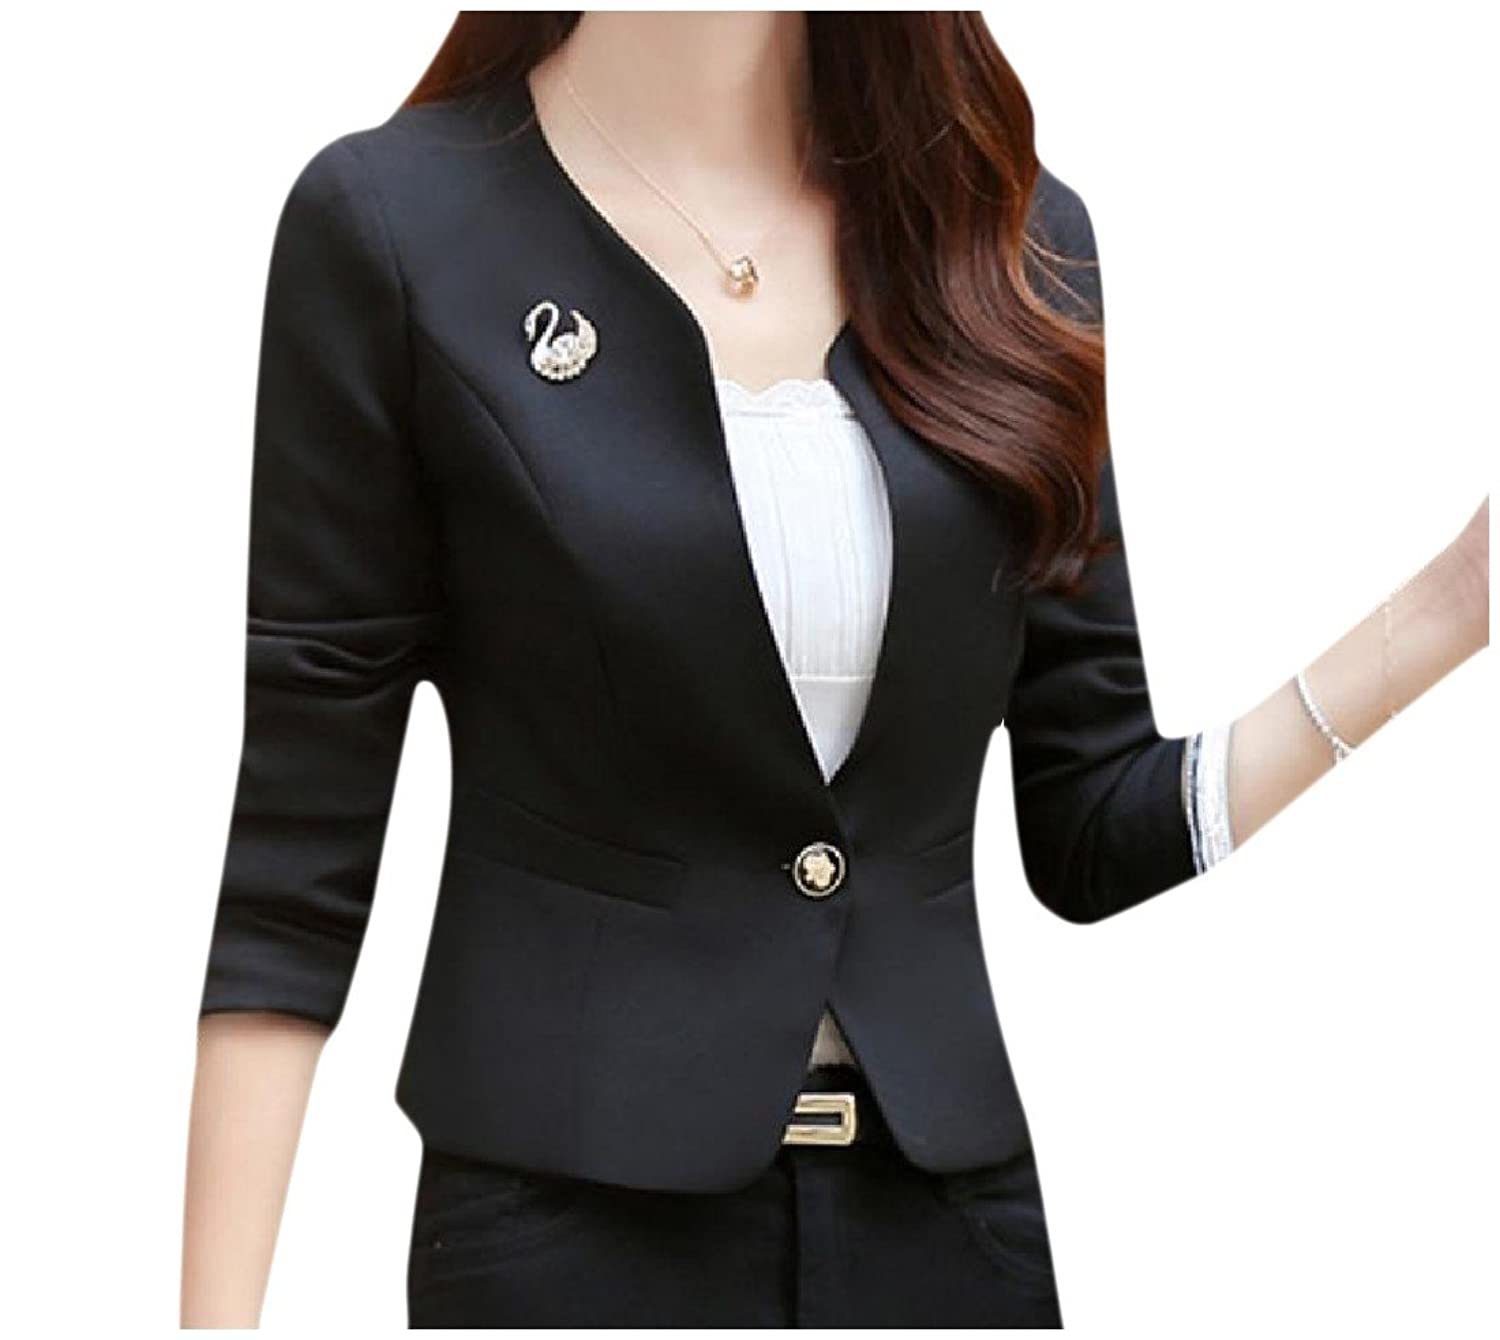 Sexybaby Women's All-Match Solid Color O-Neck Suit Jacket Blazer Coat